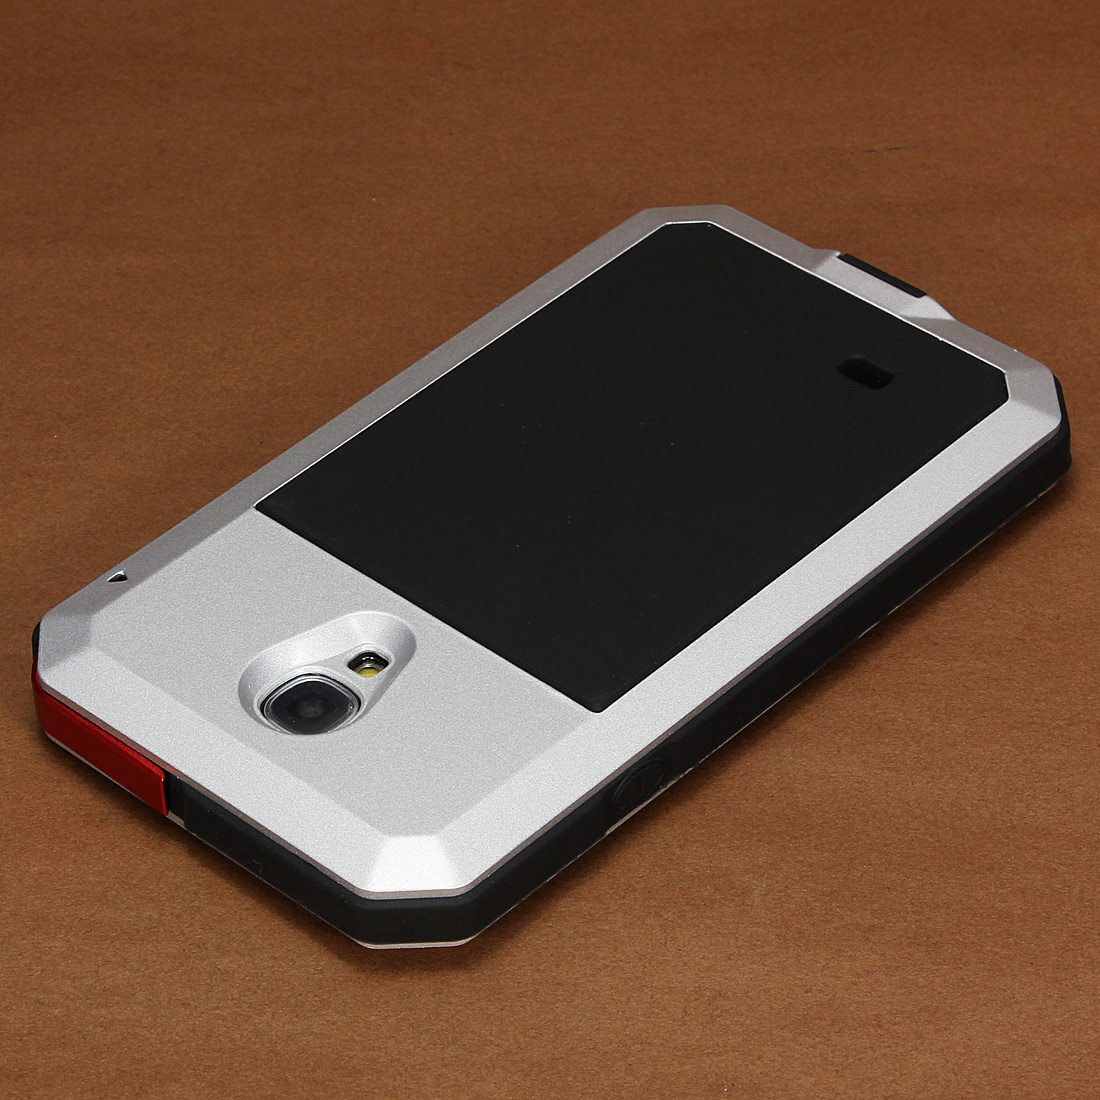 Aluminum Shock Water Proof Gorilla Glass Case For Samsung i9500